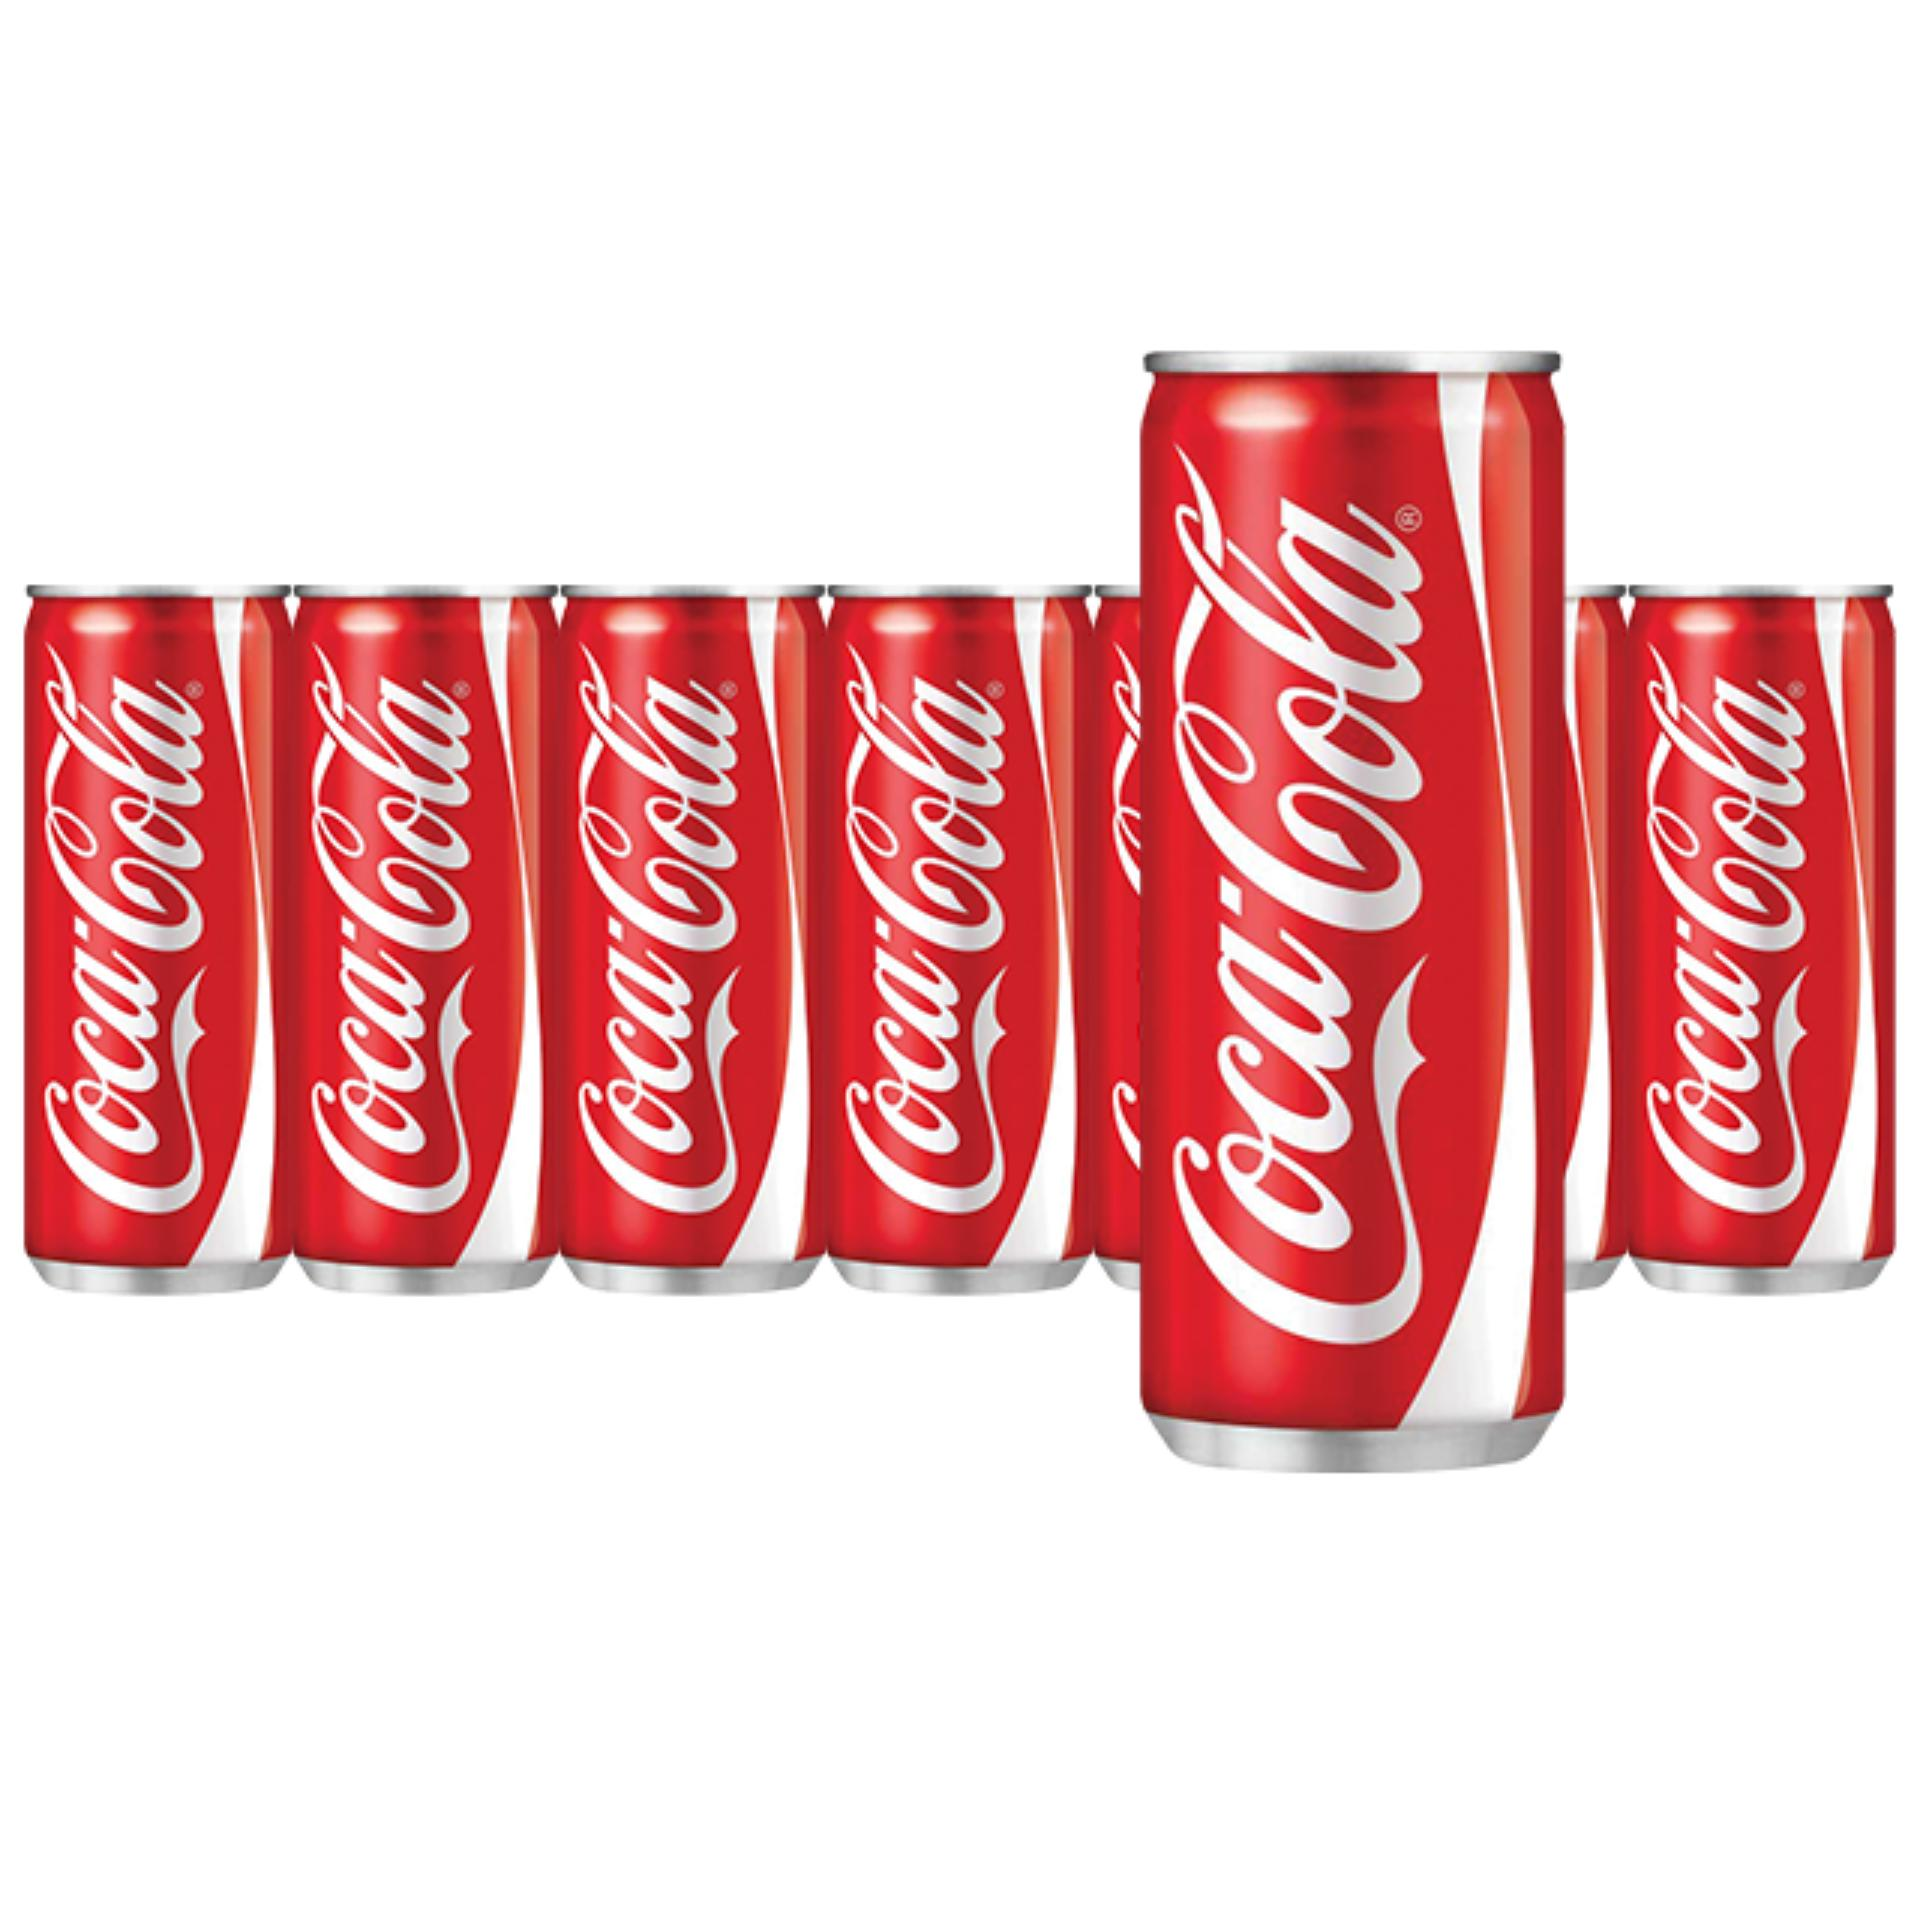 4 lon Coca-Cola đỏ 330ml